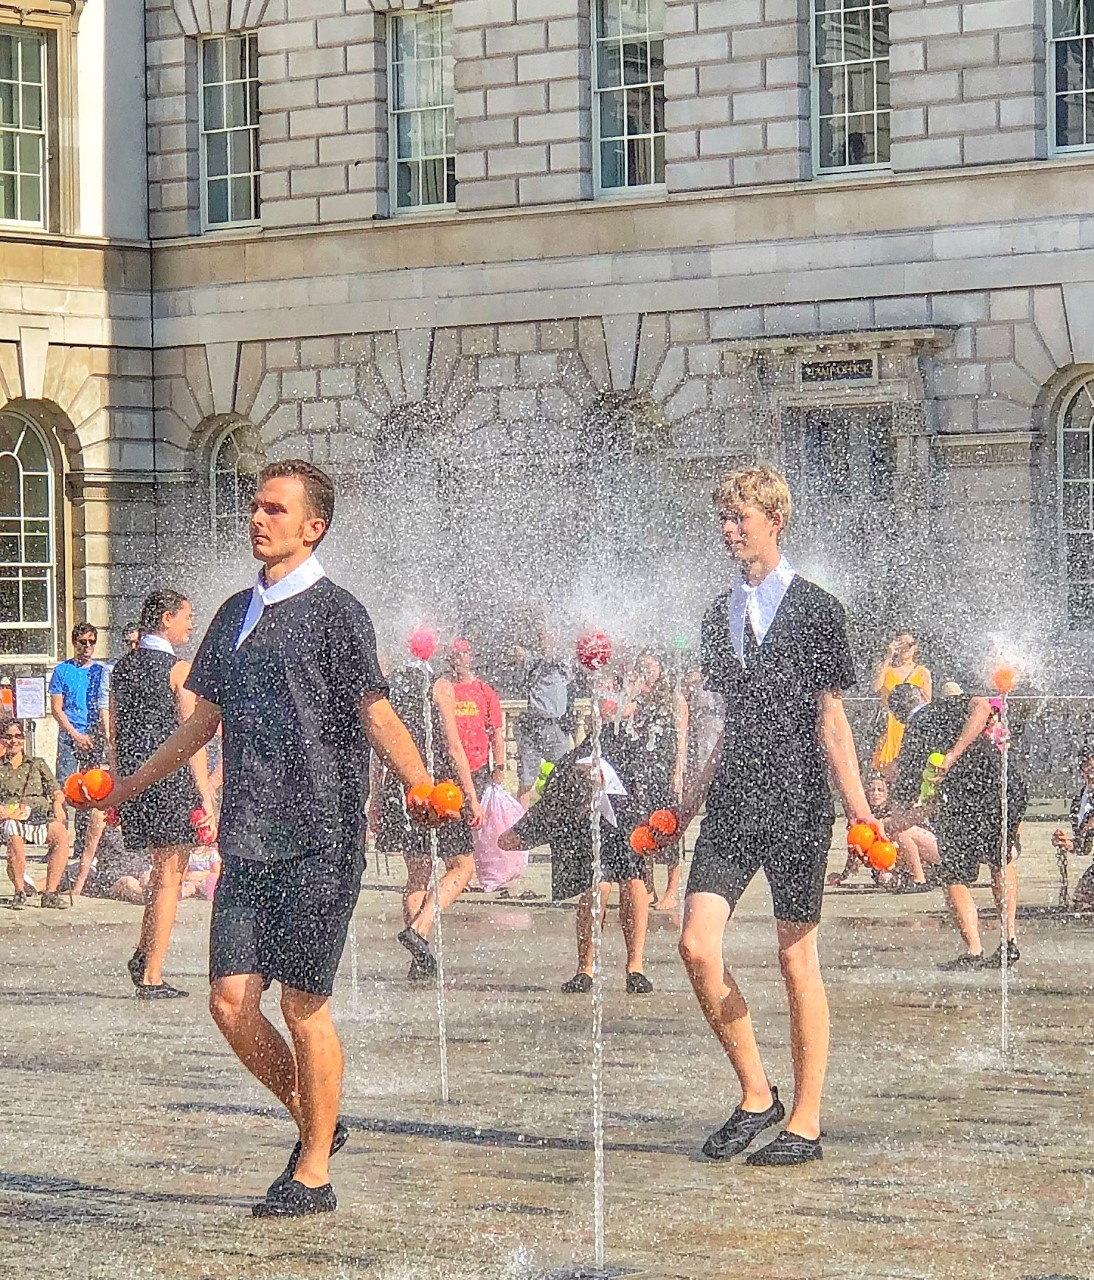 Cascade by Gandini Juggling at Somerset House jugglingben